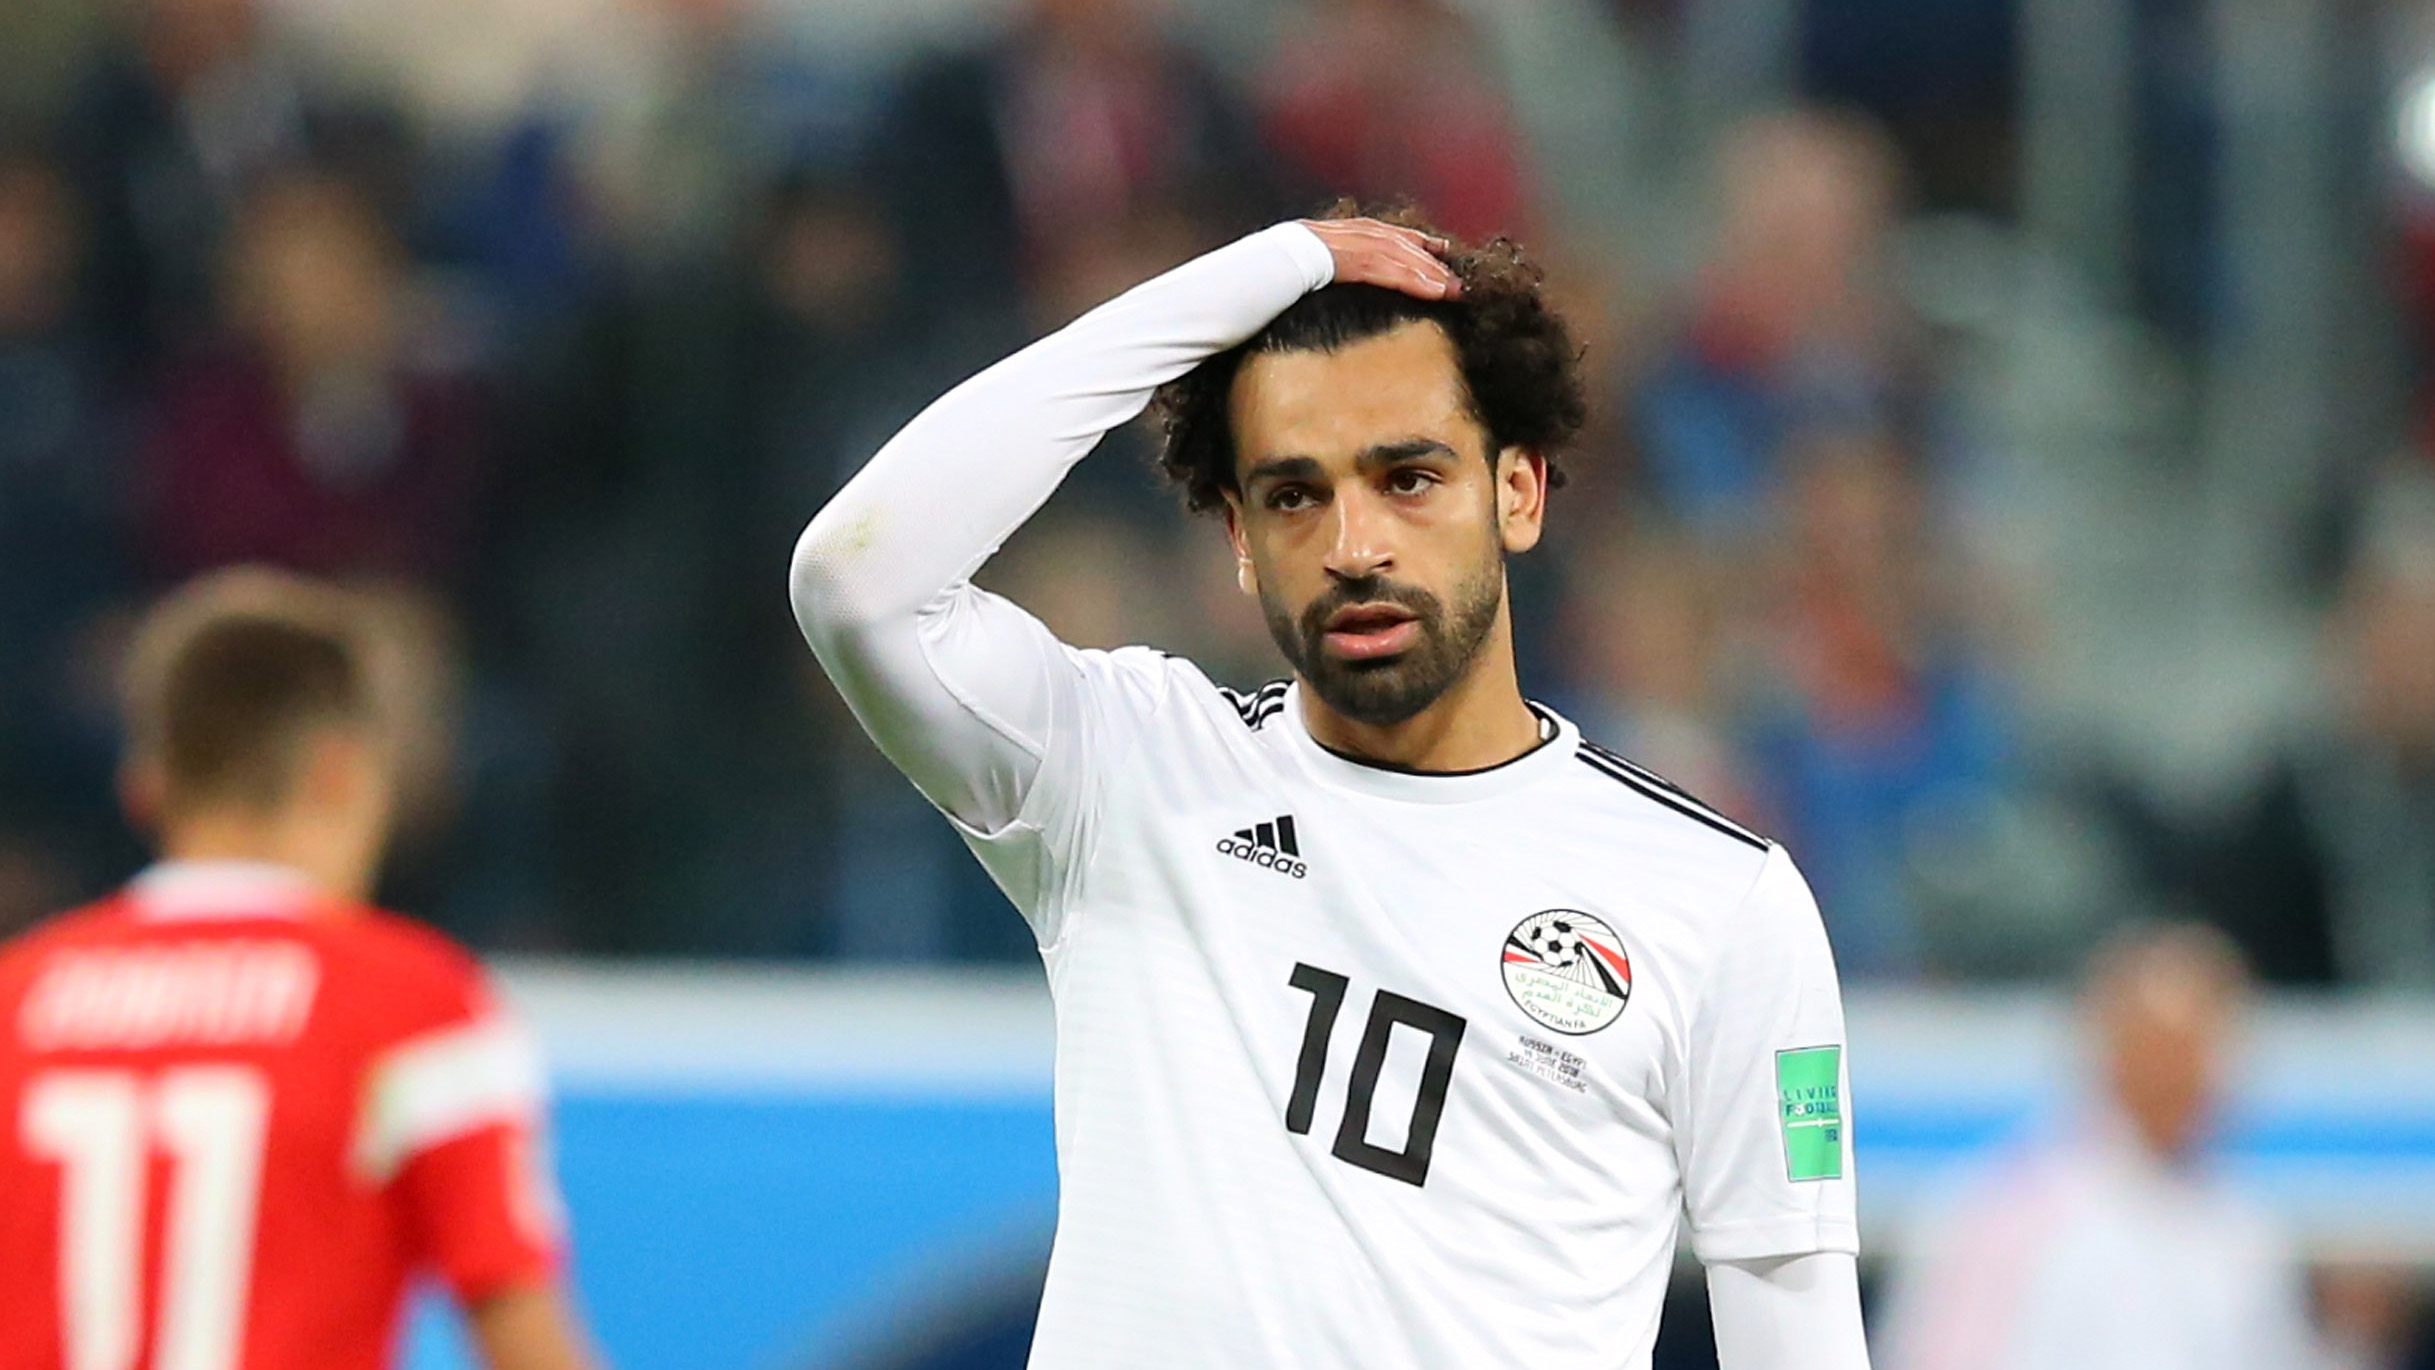 Salahs World Cup dream turns into a nightmare as Egypt lose to a rampant Russia